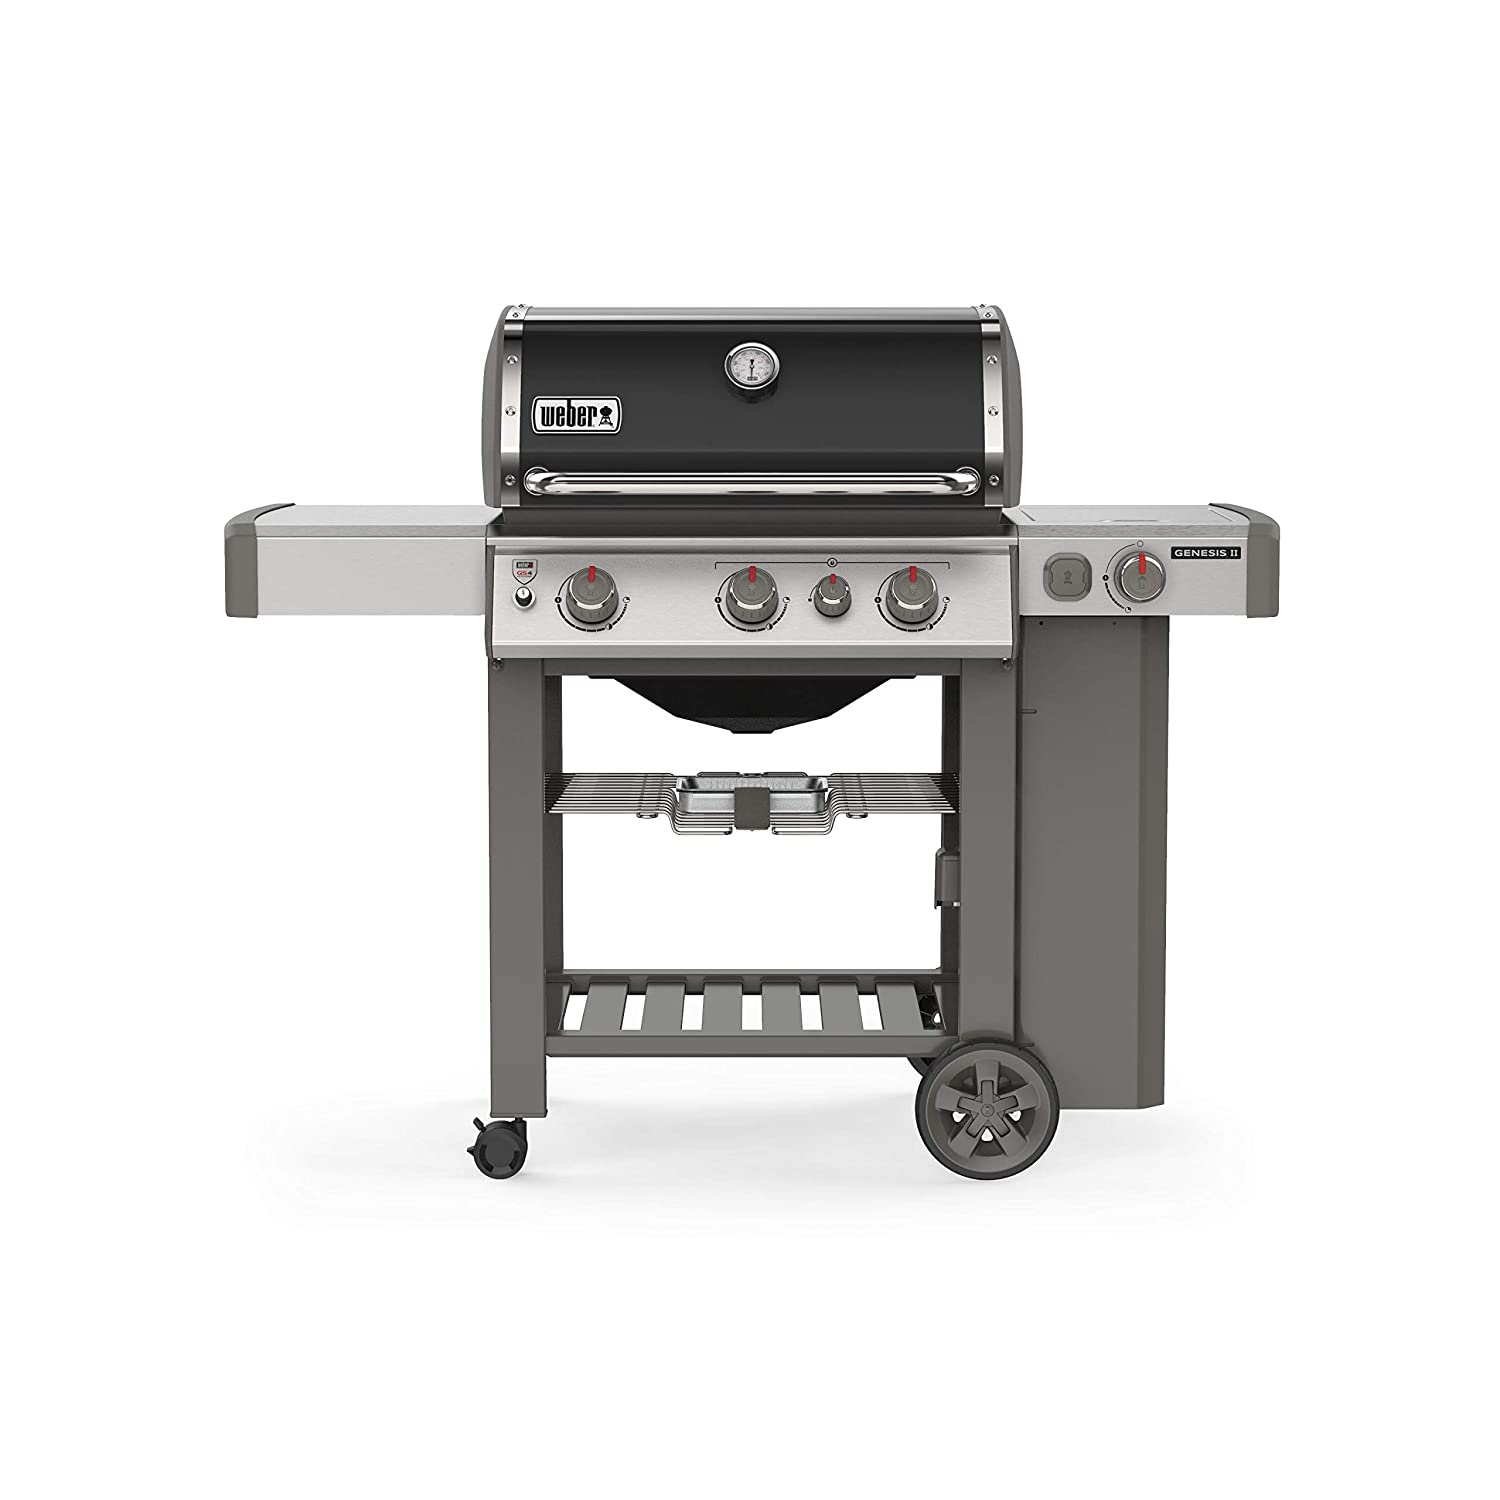 weber genesis e-330 38,000 btu 3-burner gas grill with side burner